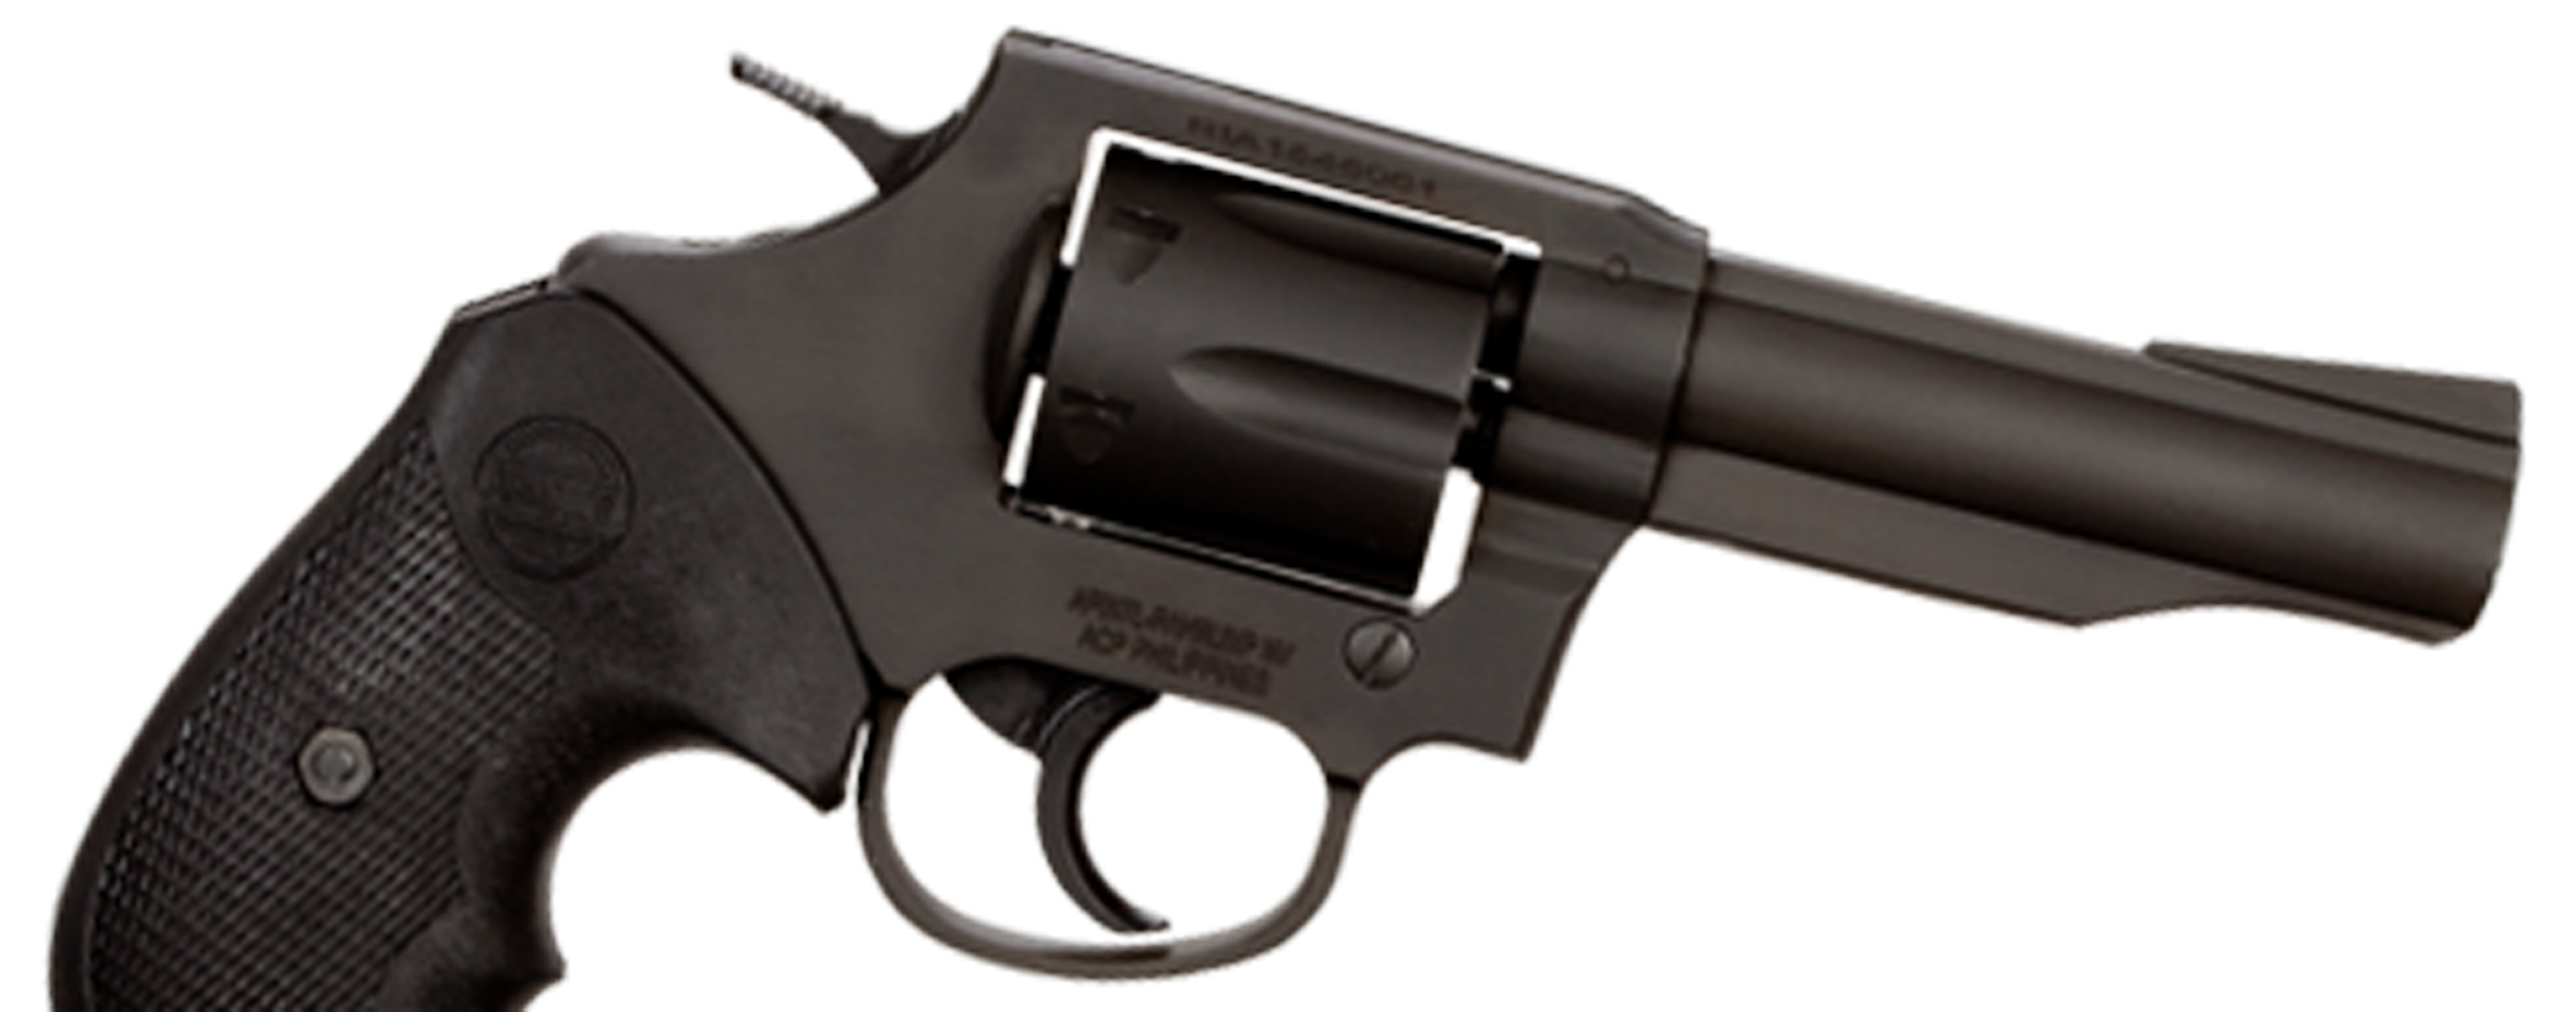 51261_Revolver_M200_38spl_right_copy.png